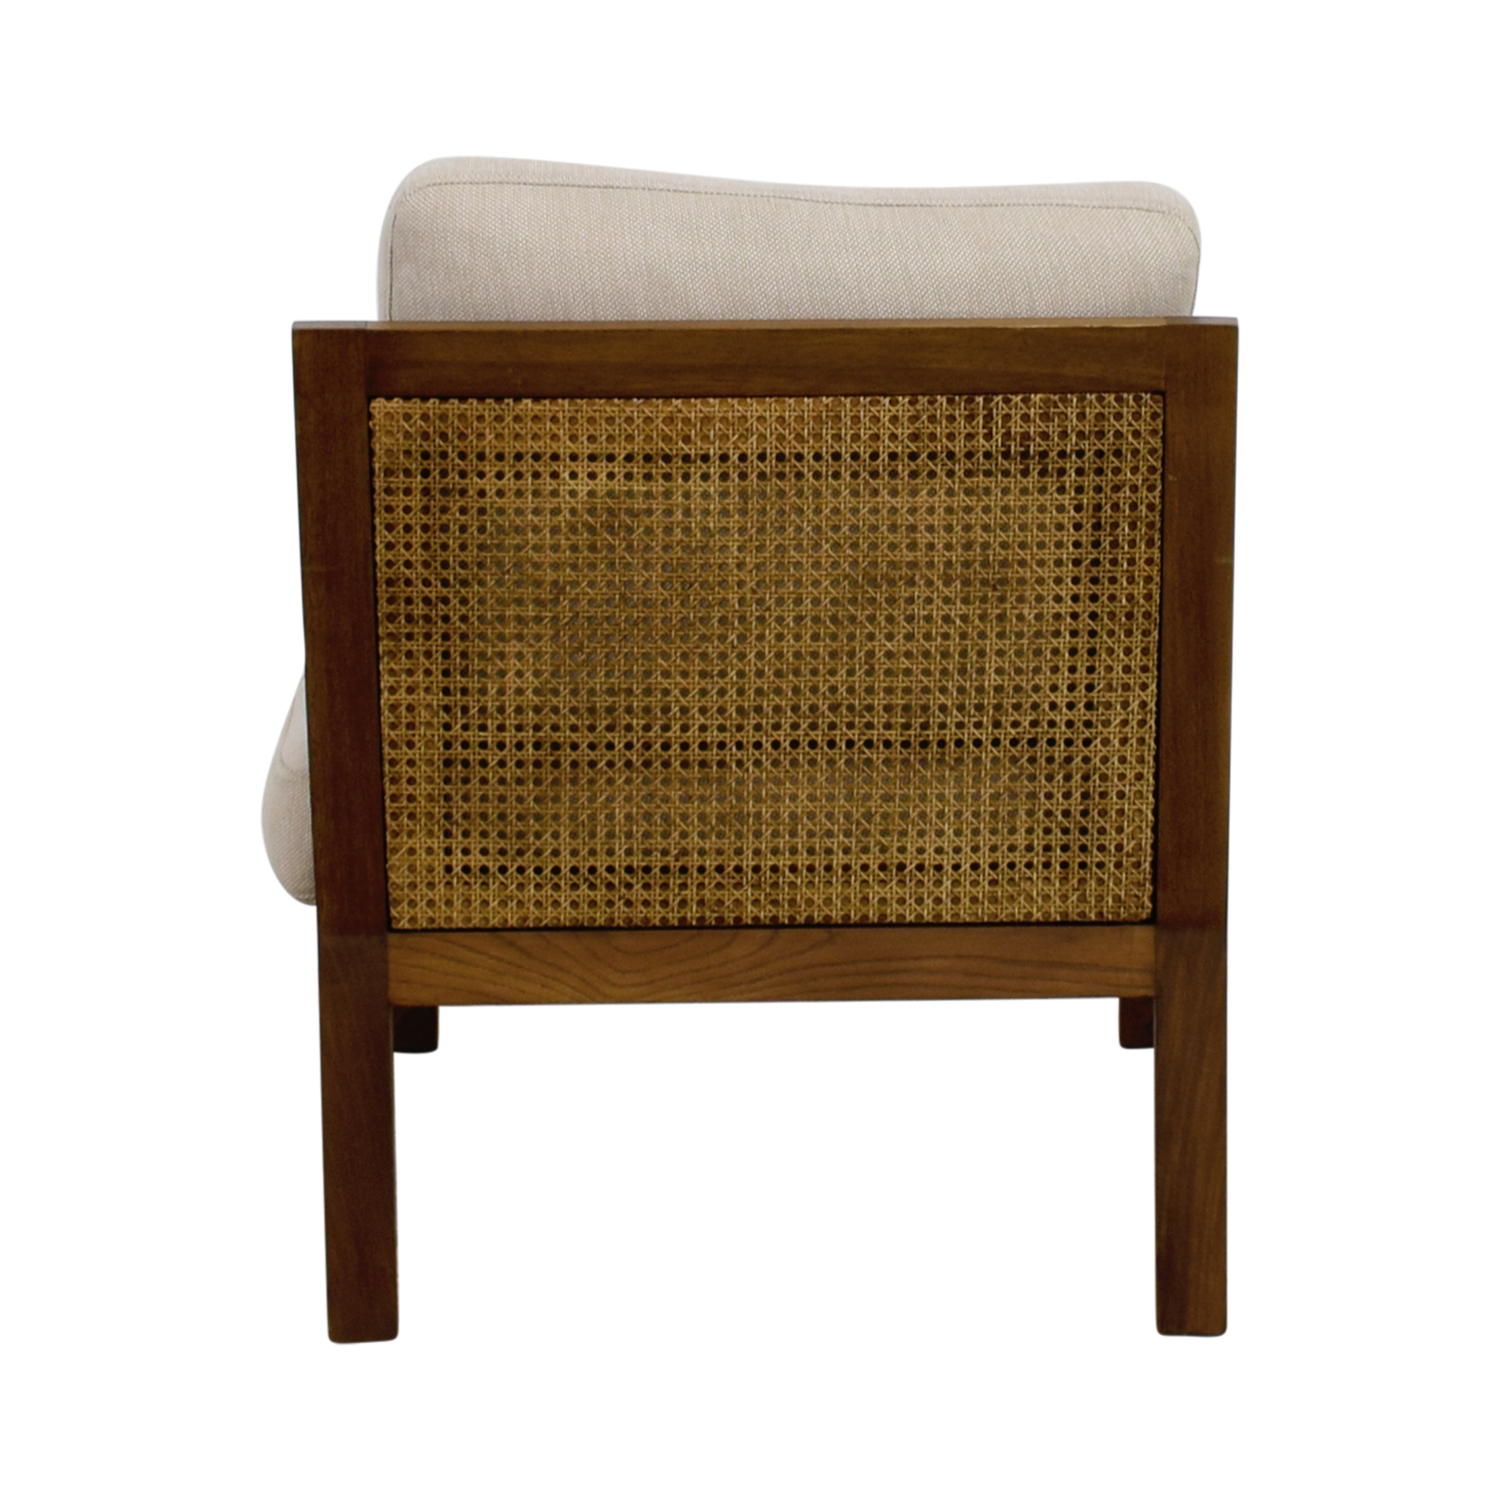 buy Zientte Niebla Beige Accent Chair Zientte